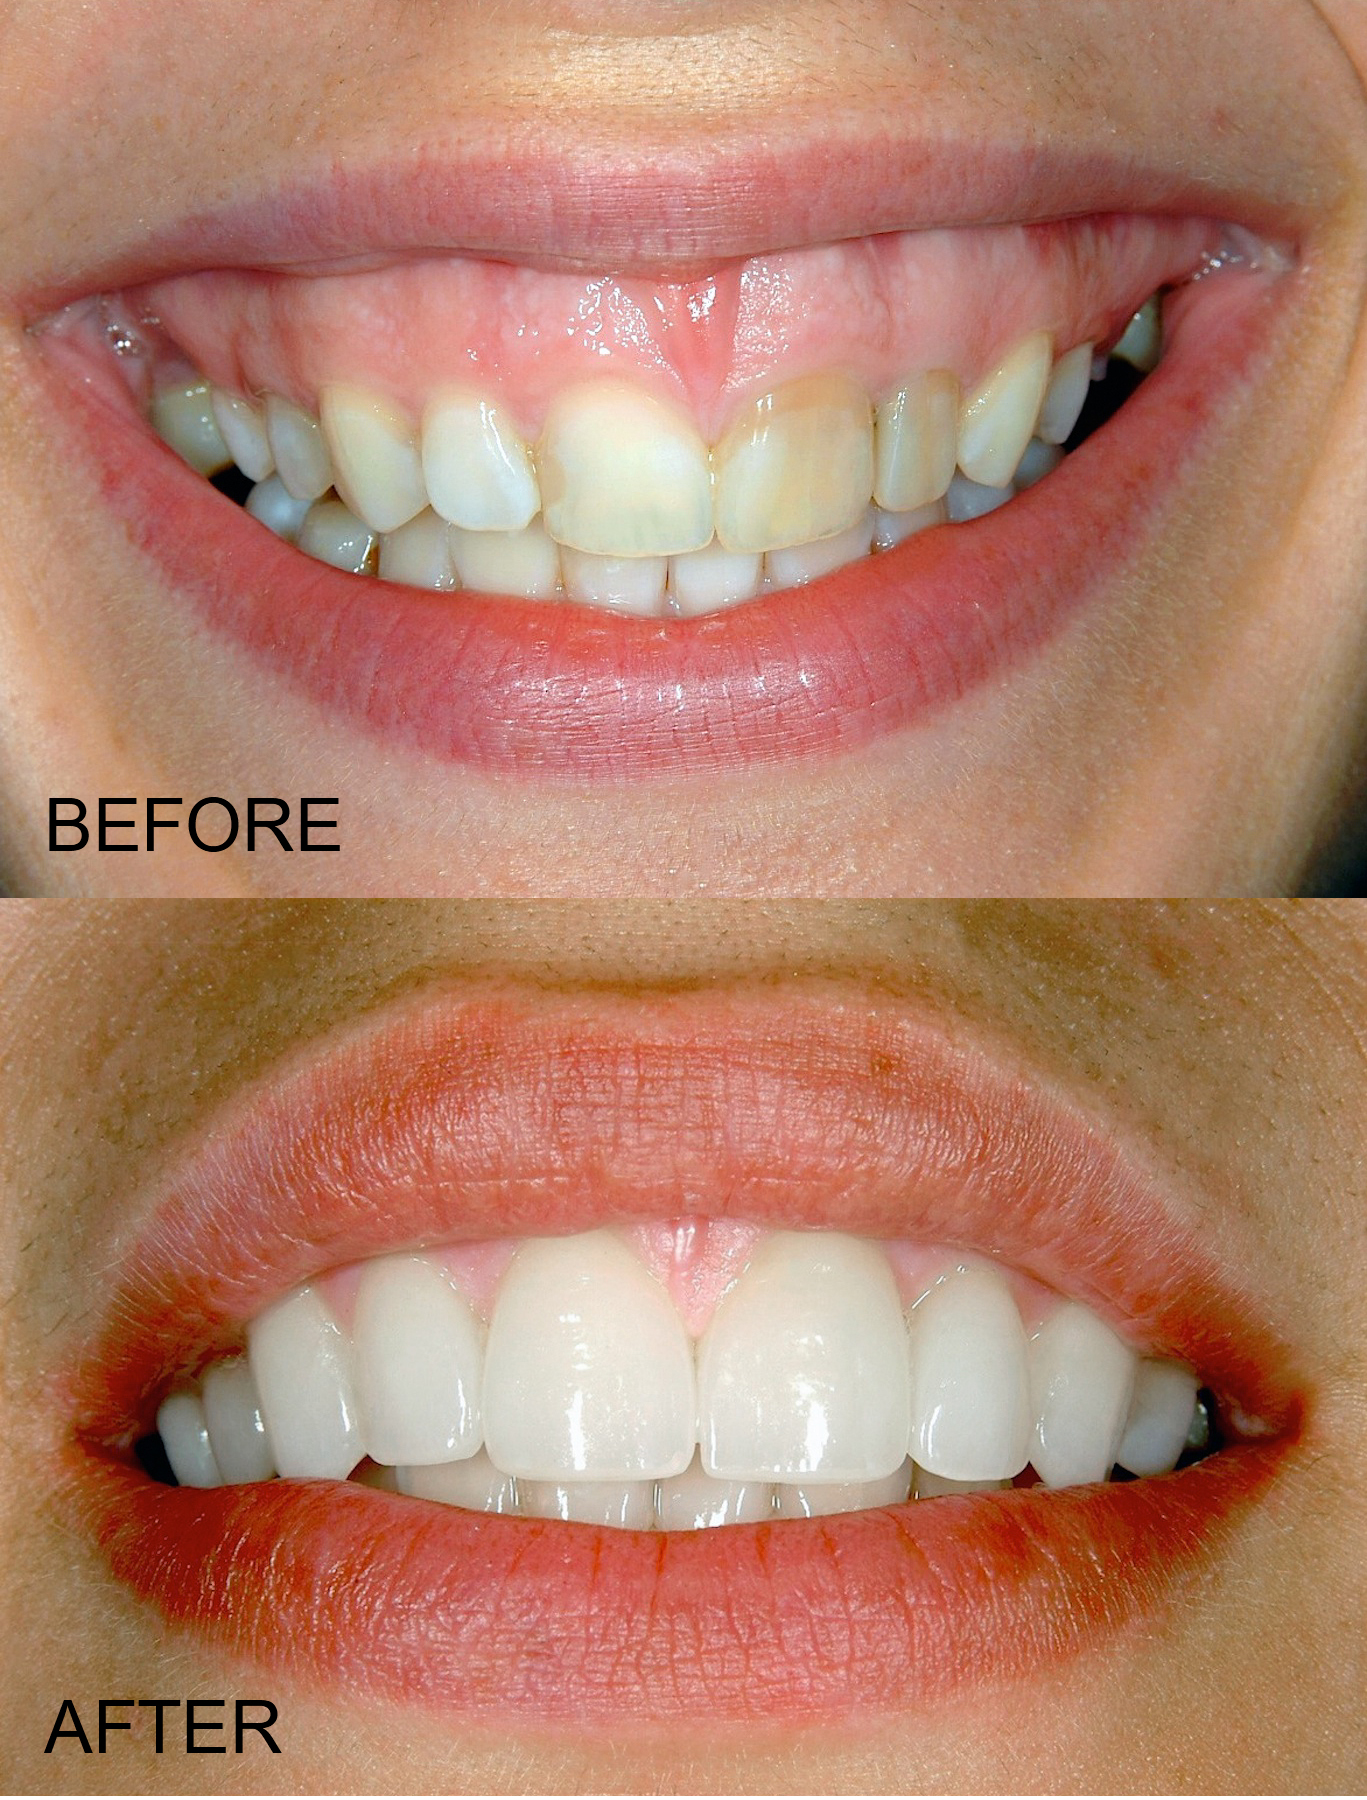 What is a Gummy Smile?, Dallas Periodontal Associates - Dental Implants & Gum Disease